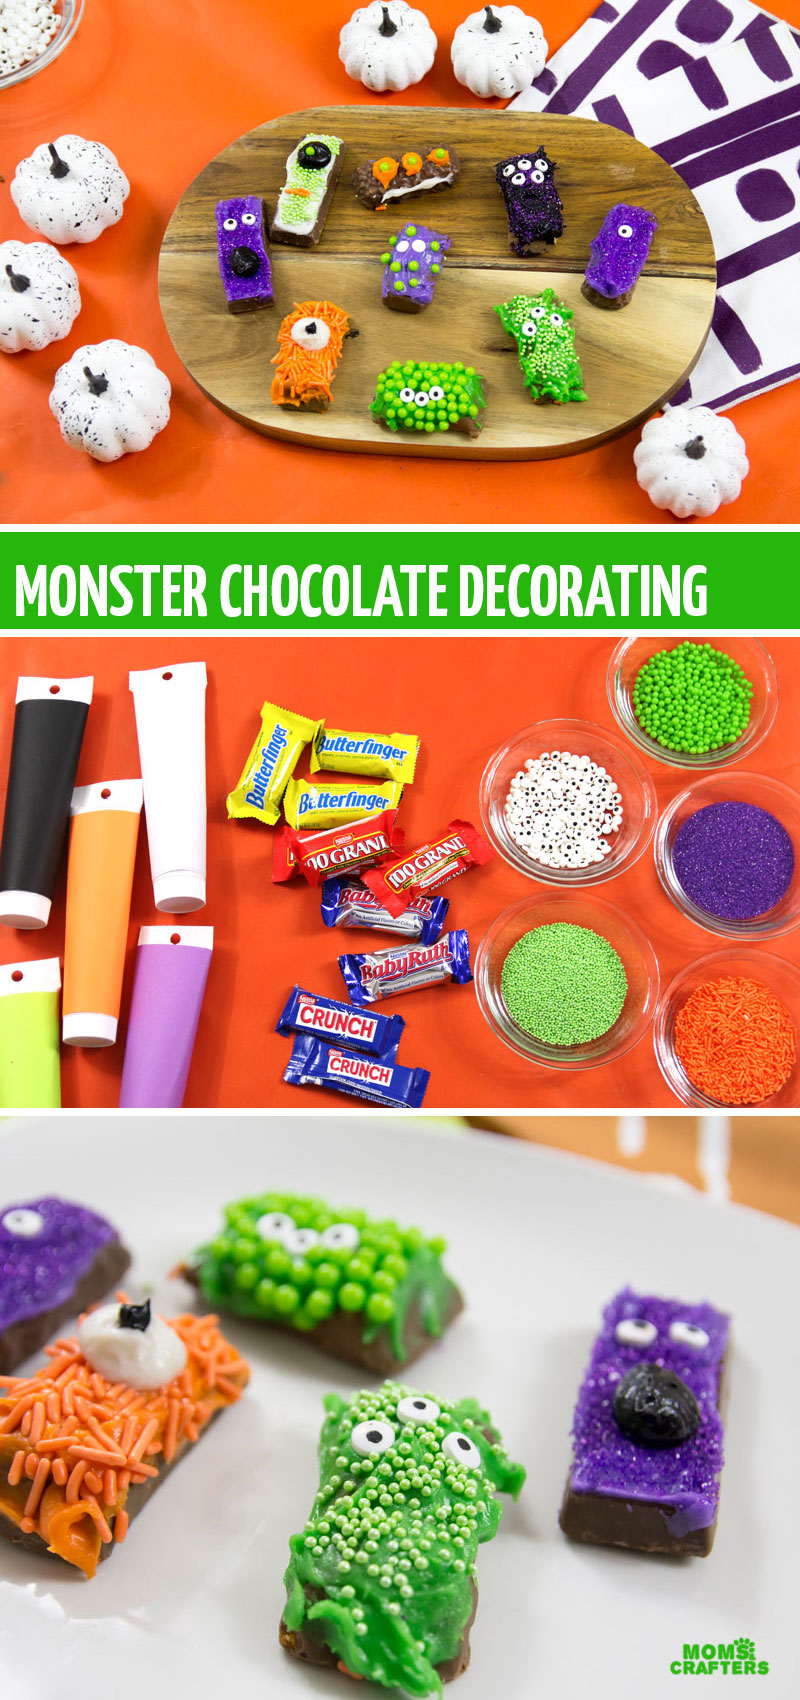 If you're looking for Halloween or Monster food ideas, this monster candy bar decorating idea is perfect for kids and adults to make! It's super easy and can be made in advance, and uses some favorite chocolate bars!